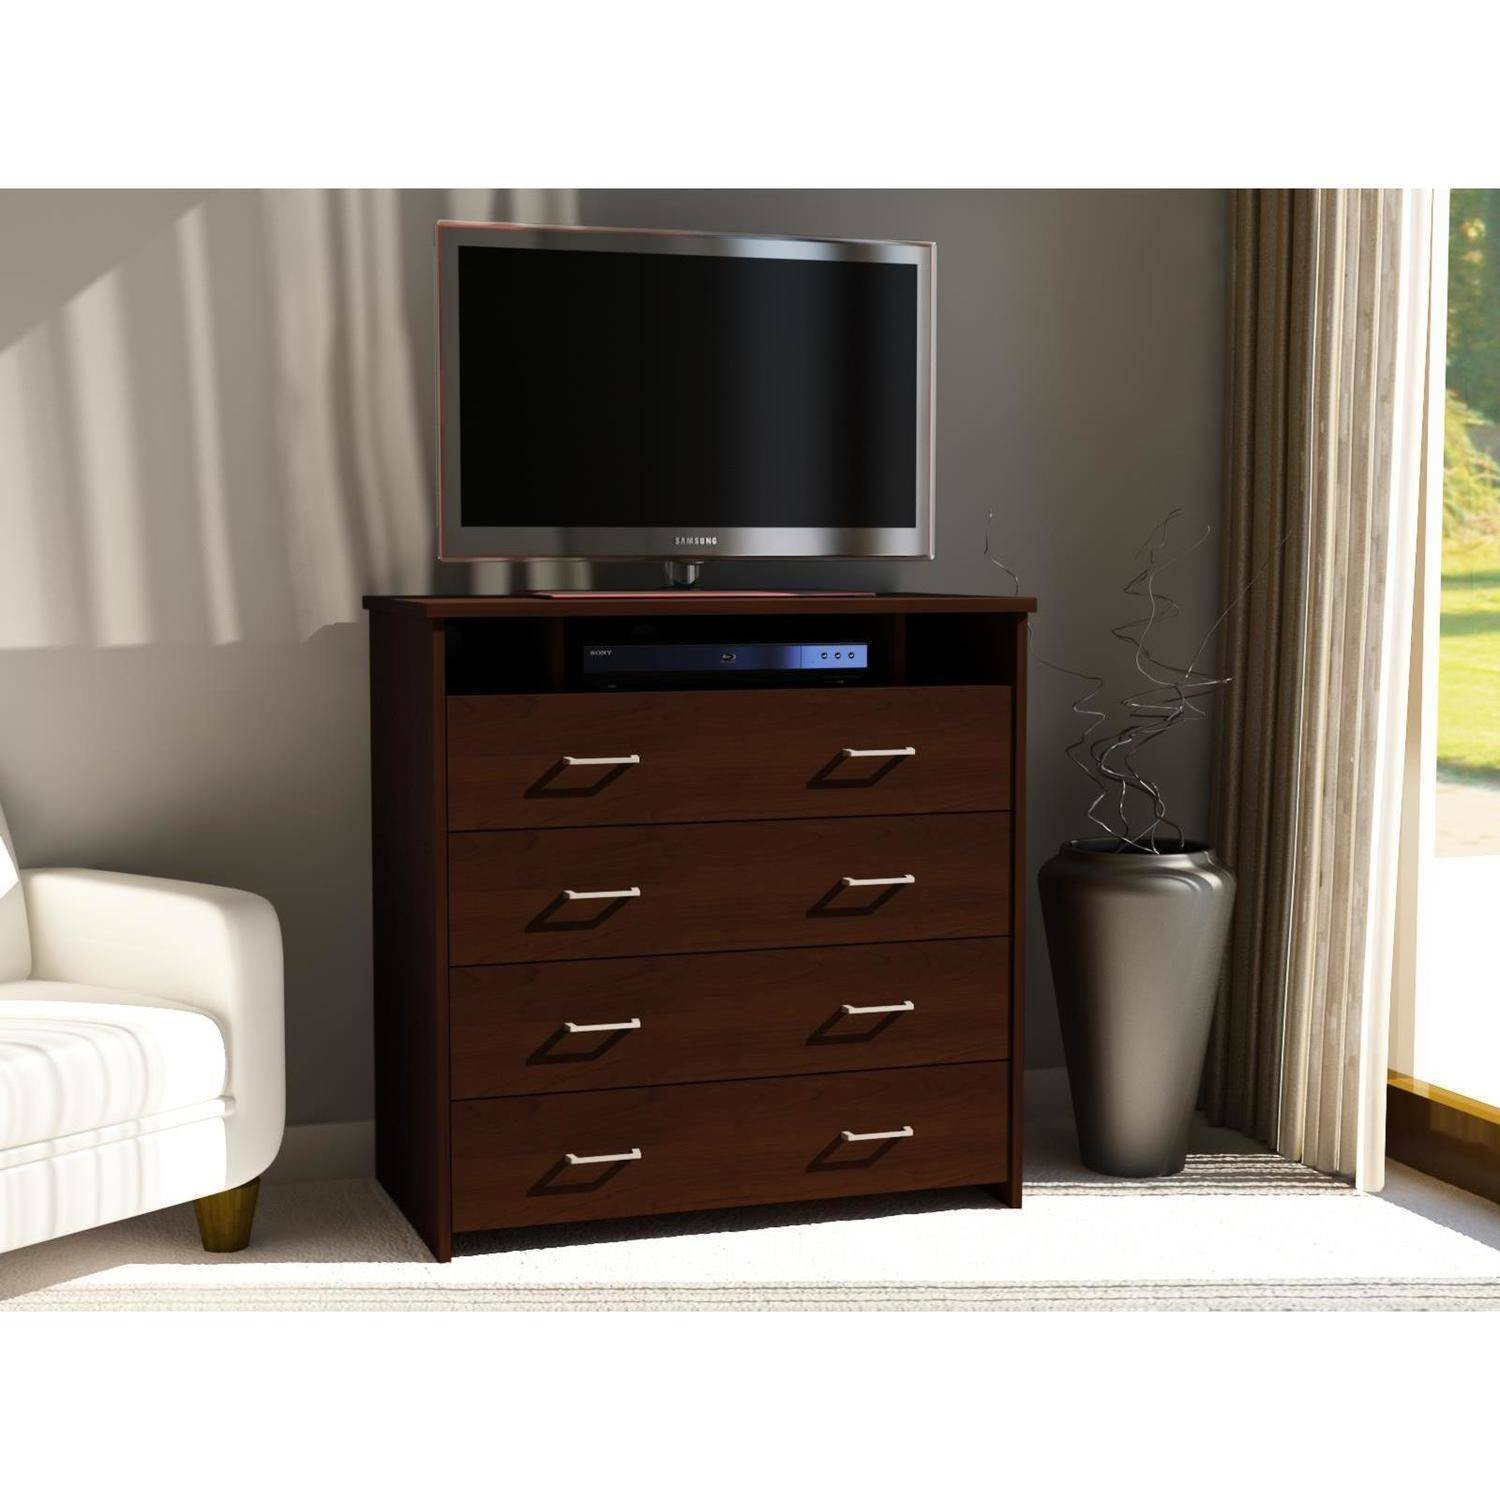 Tv Media Chest Bedroom Awesome Media Chests for Bedroom Bedroom Furniture Mosaic Media